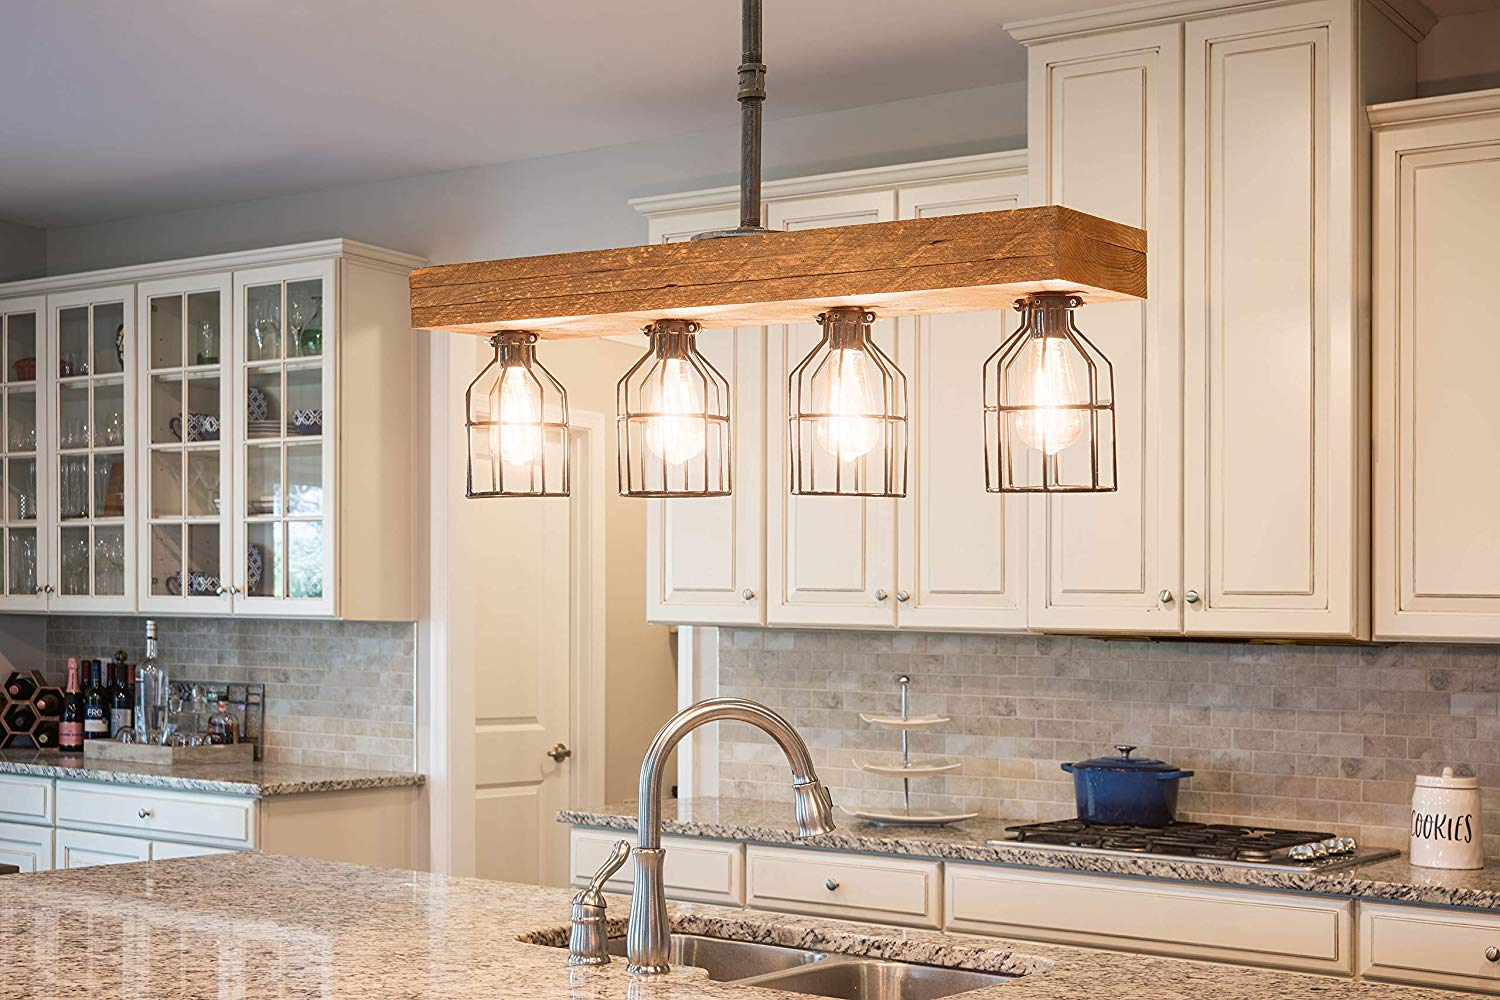 Top 10 Best Pendant Lights For Kitchen In 2020 Trendy Reviewed